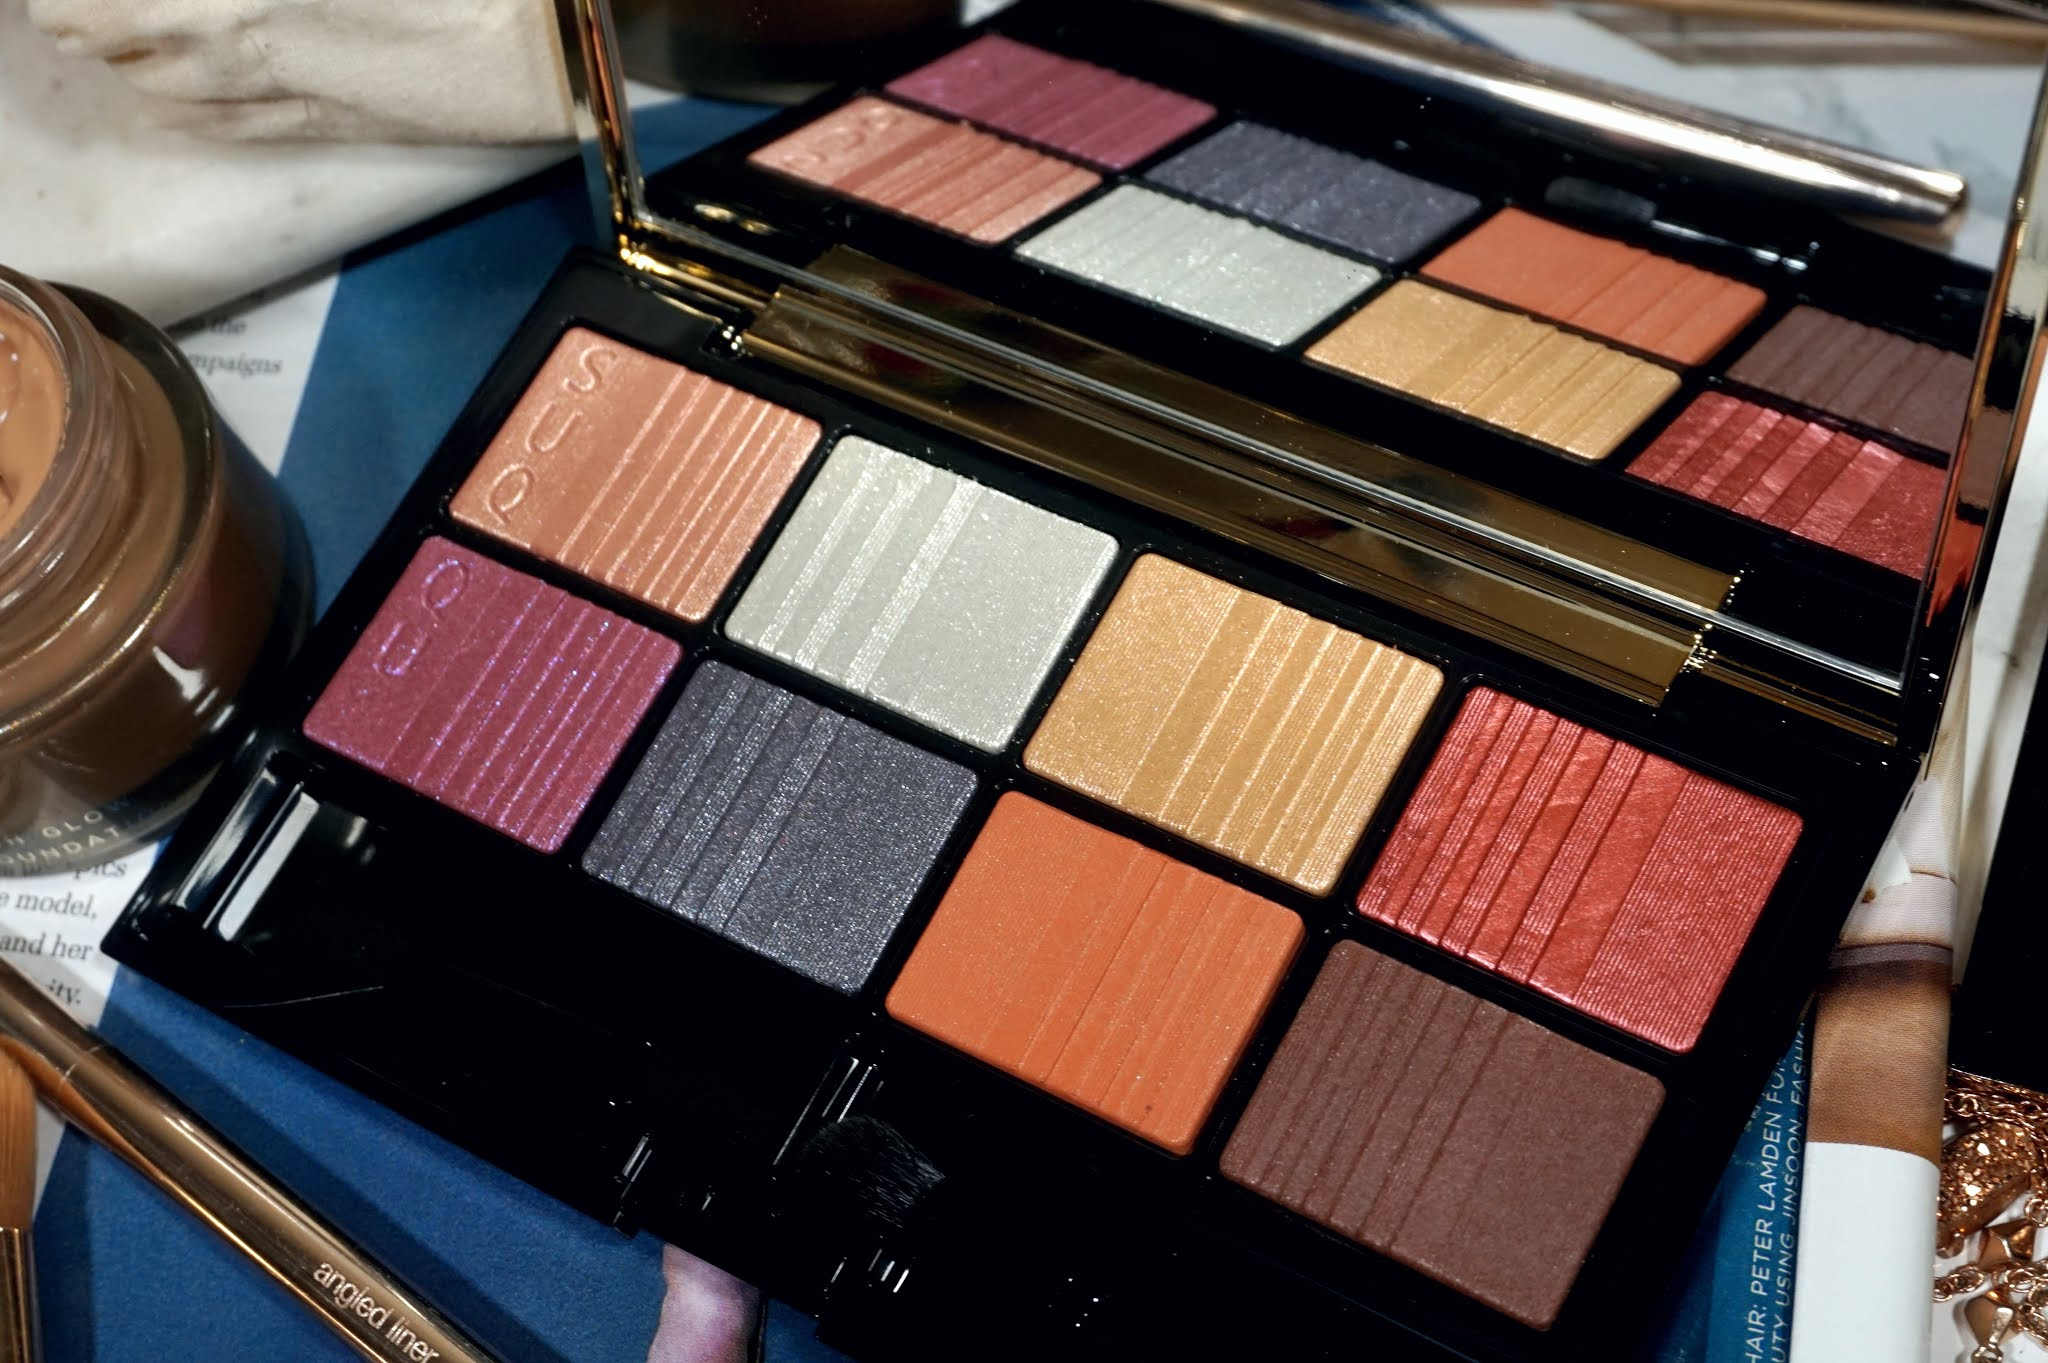 SUQQU 2020 Holiday Eyeshadow Palette Review and Swatches